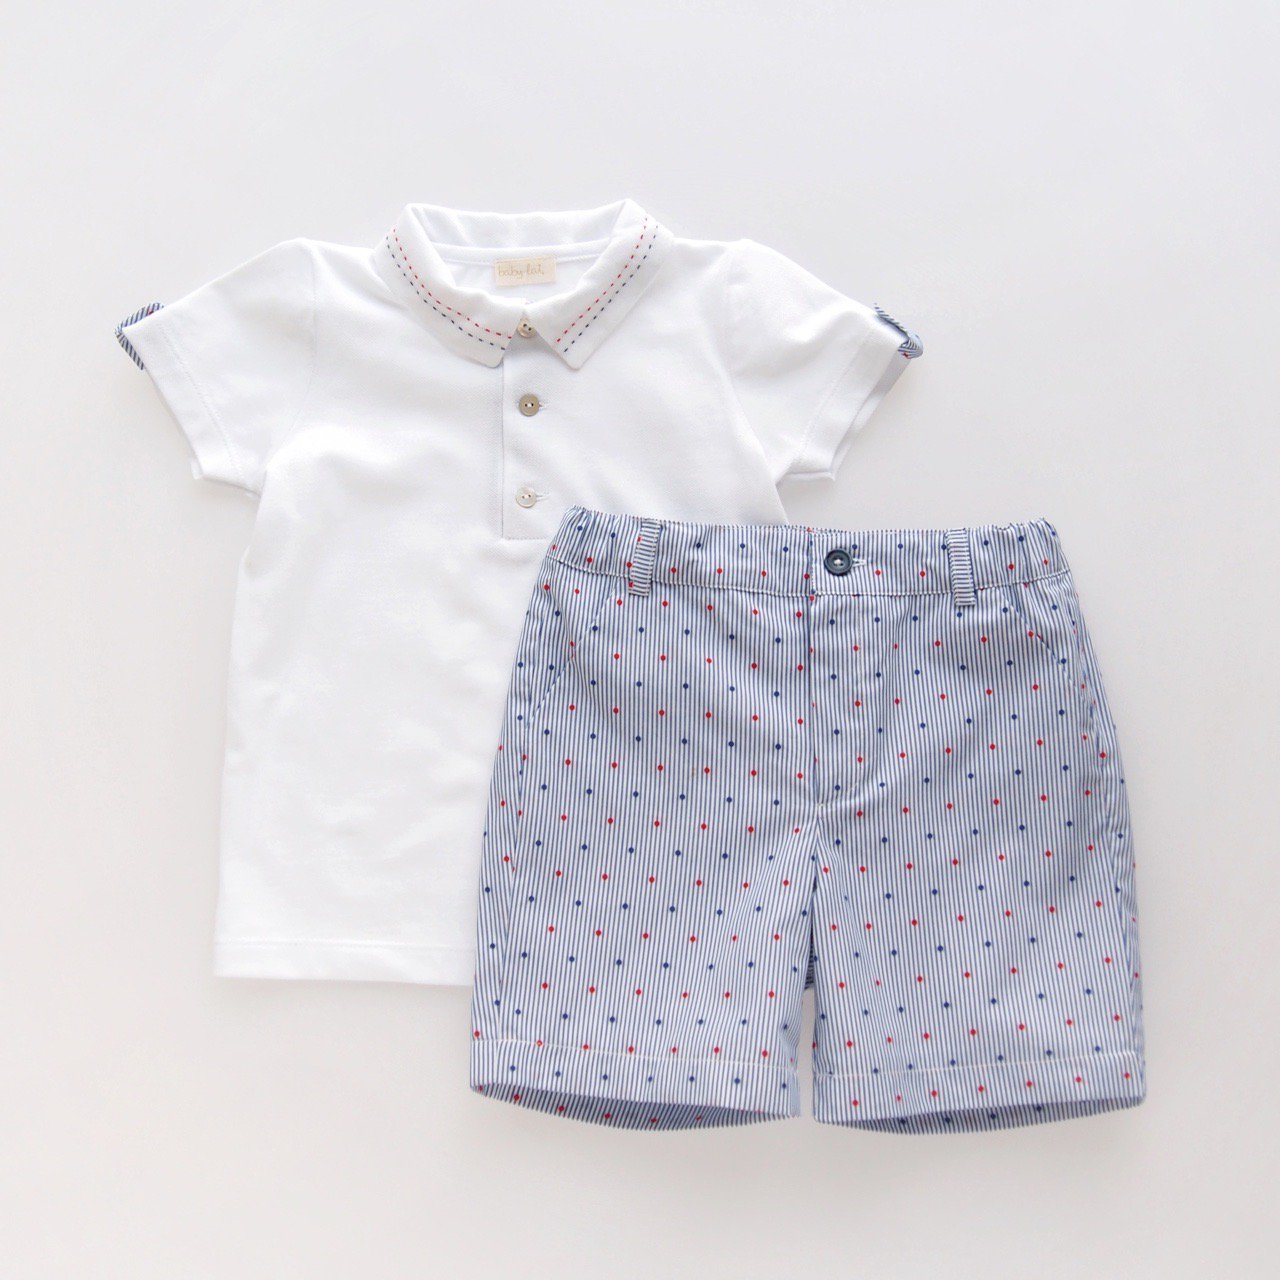 <img class='new_mark_img1' src='https://img.shop-pro.jp/img/new/icons1.gif' style='border:none;display:inline;margin:0px;padding:0px;width:auto;' />baby lai/ Laivicar - Polo and dots stripes shorts boy's set